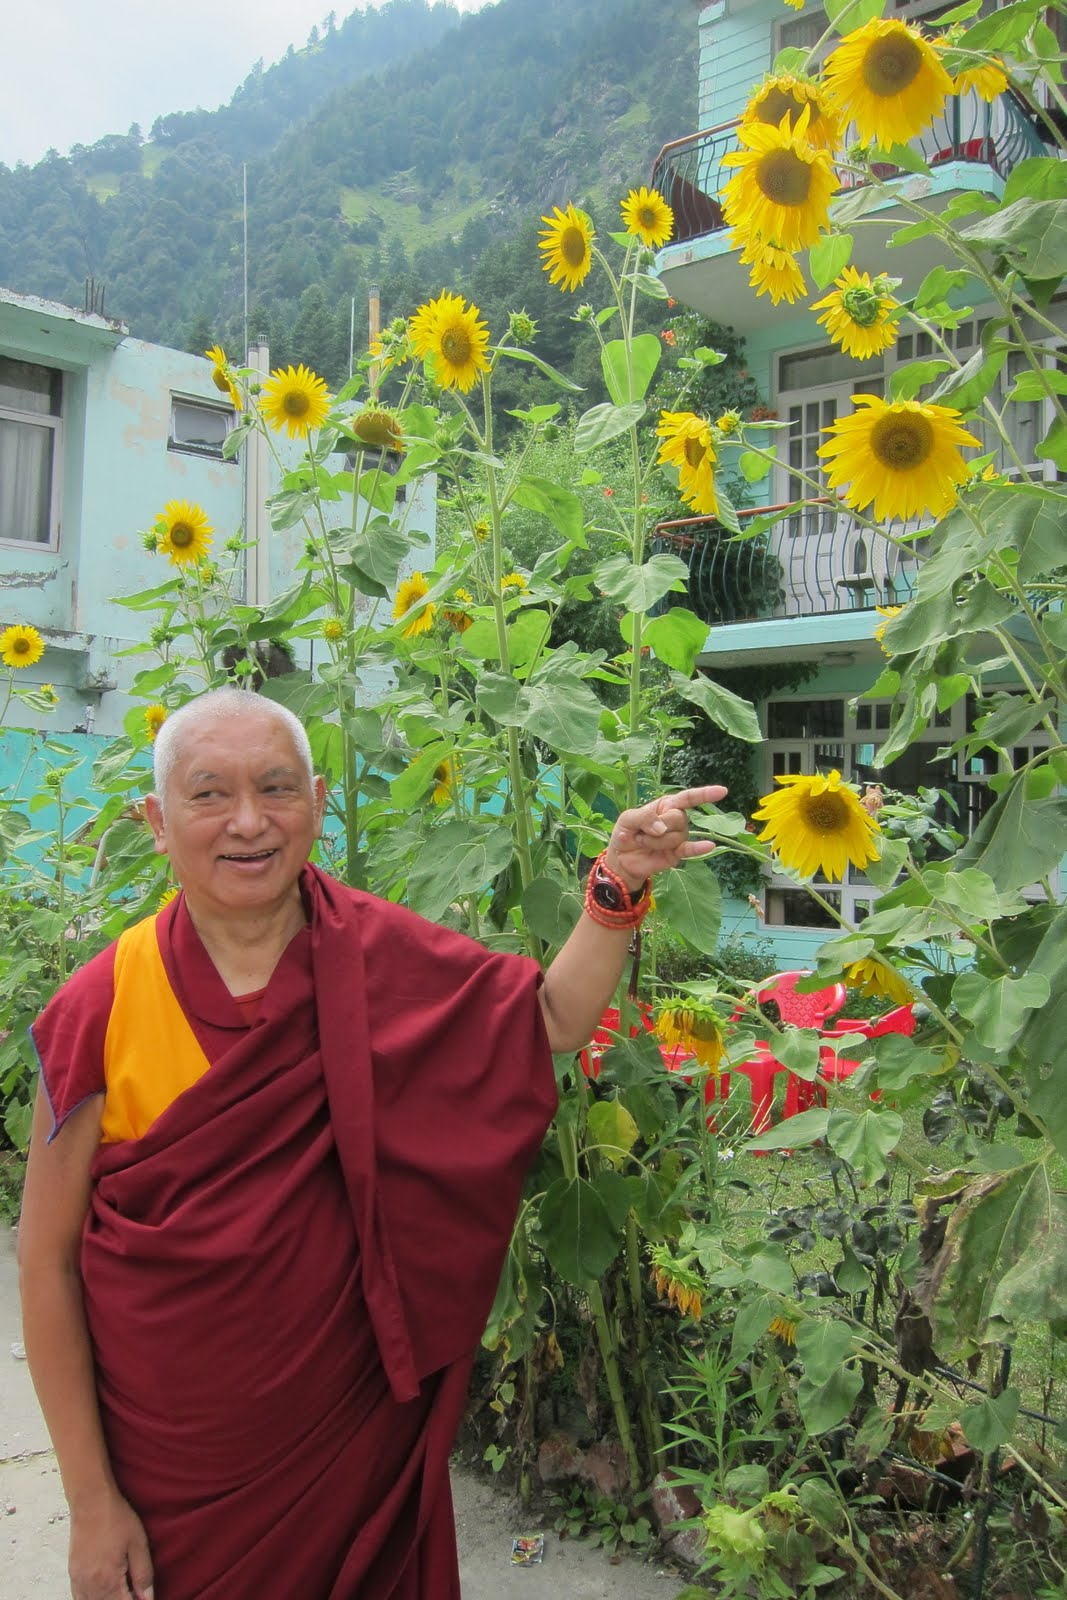 Rinpoche in Manali, India, July 30, 2013. Photo: Ven.Sarah Thresher